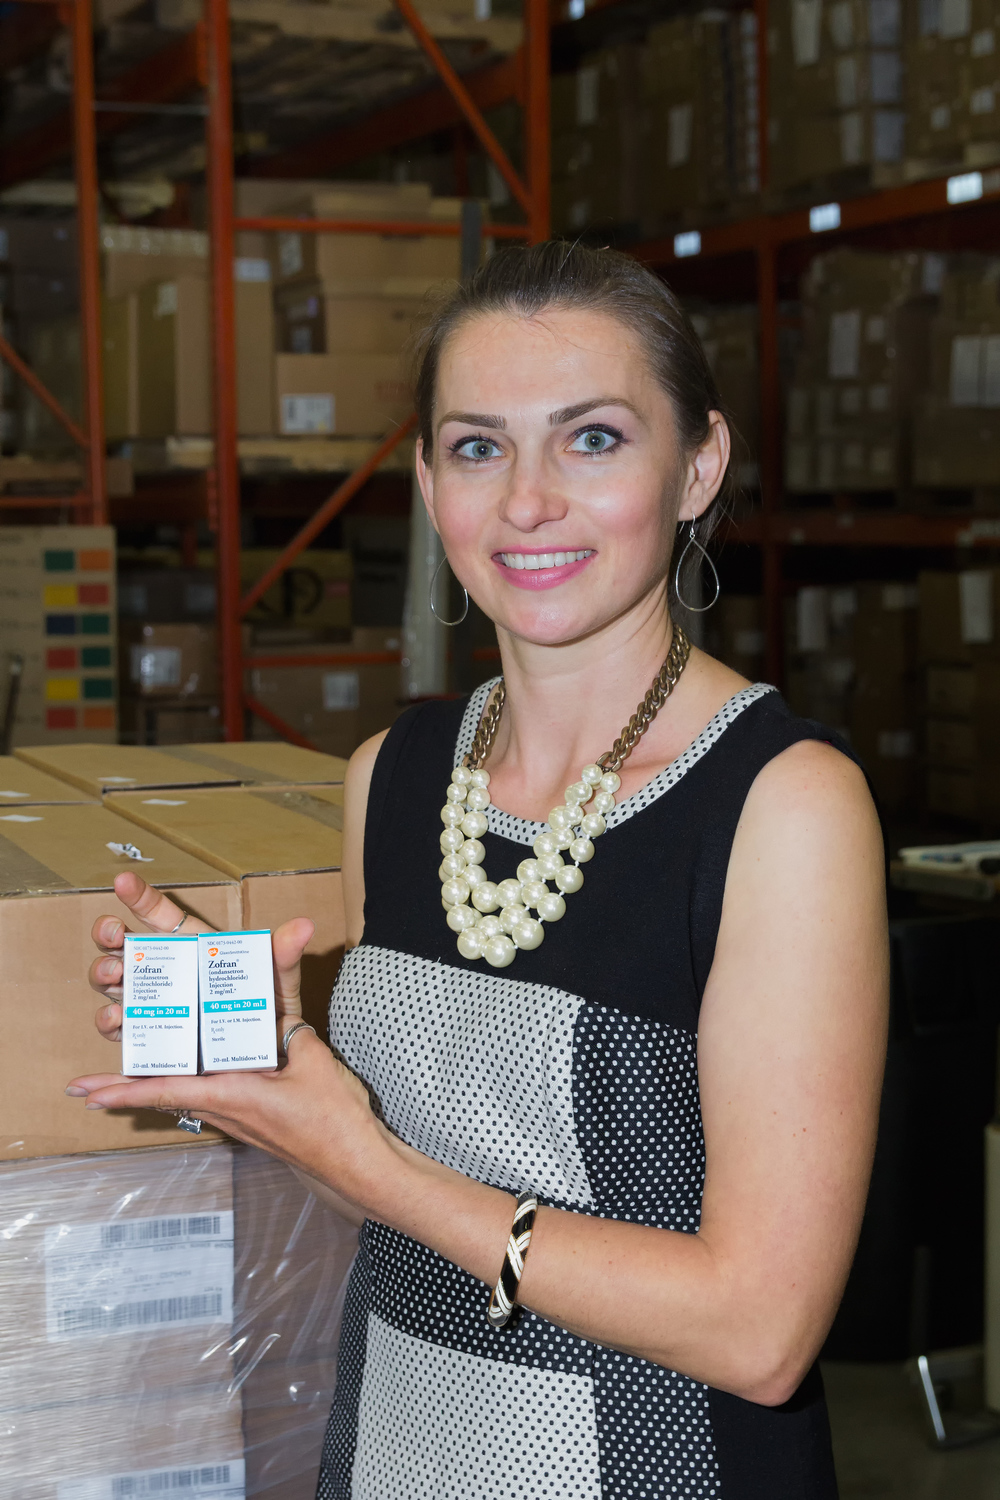 Edyta posing with donated GSK product